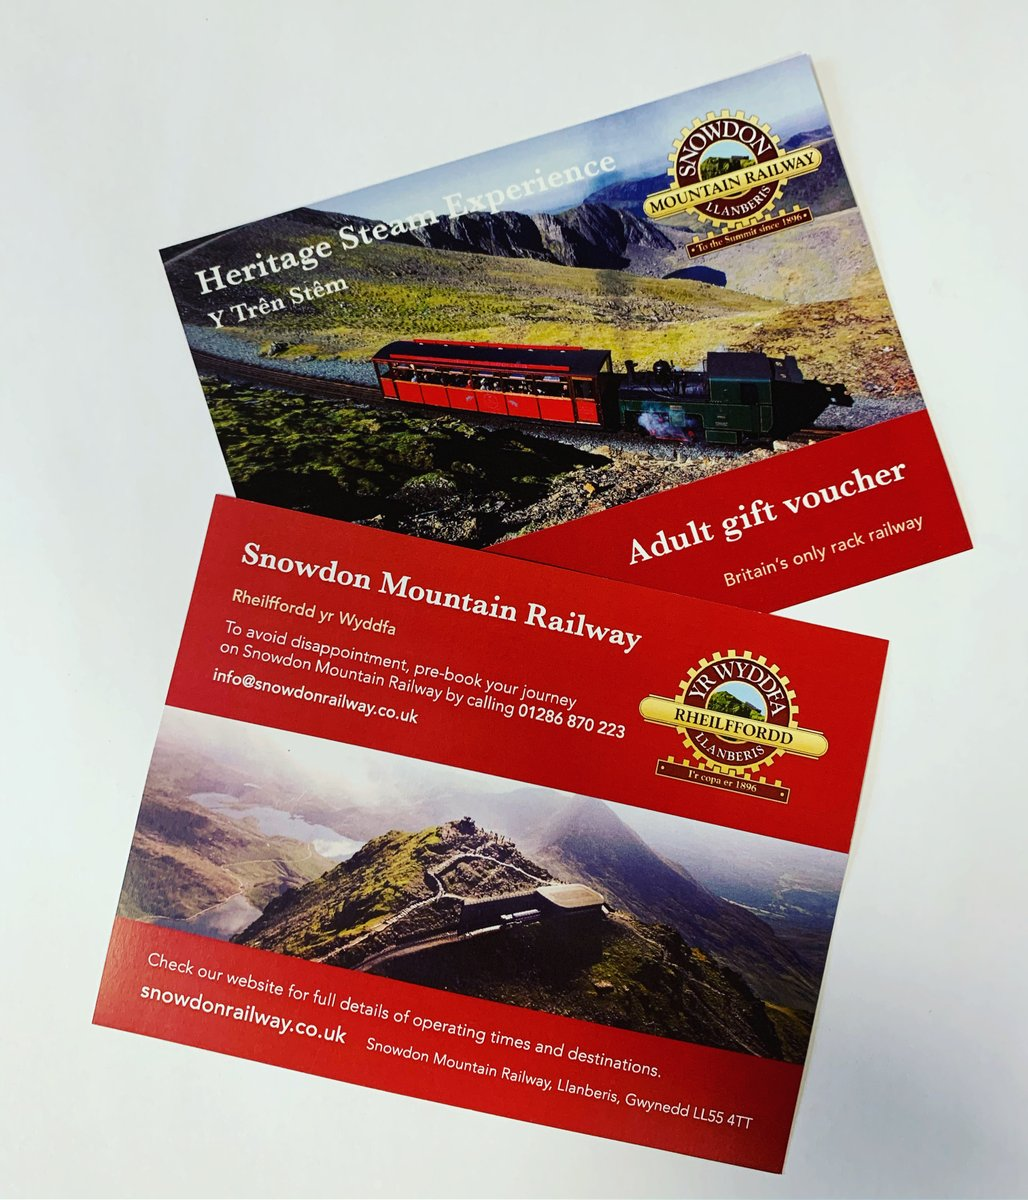 test Twitter Media - The perfect #Christmas present🎄  Gift vouchers for our Heritage Steam Experience & Traditional Diesel Service!  Call 01286 870 223 (Mon-Fri 8:30am-4pm) before the 13th December for delivery in time for #Christmas  #ThursdayMotivation #ChristmasCountdown #Christmas2019 https://t.co/1sgrY7iPtn